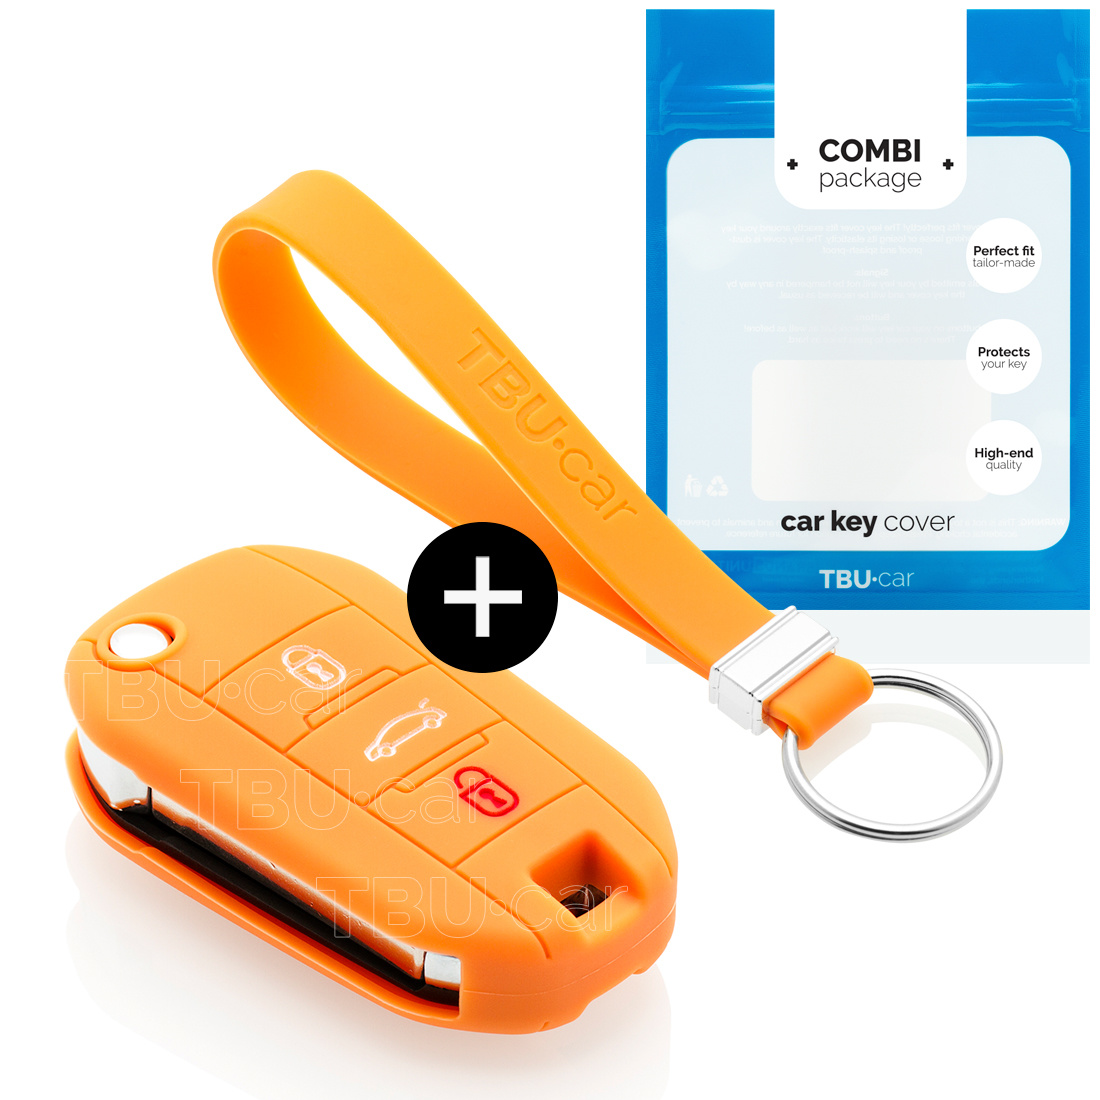 Citroën Car key cover - Silicone Protective Remote Key Shell - FOB Case Cover - Orange